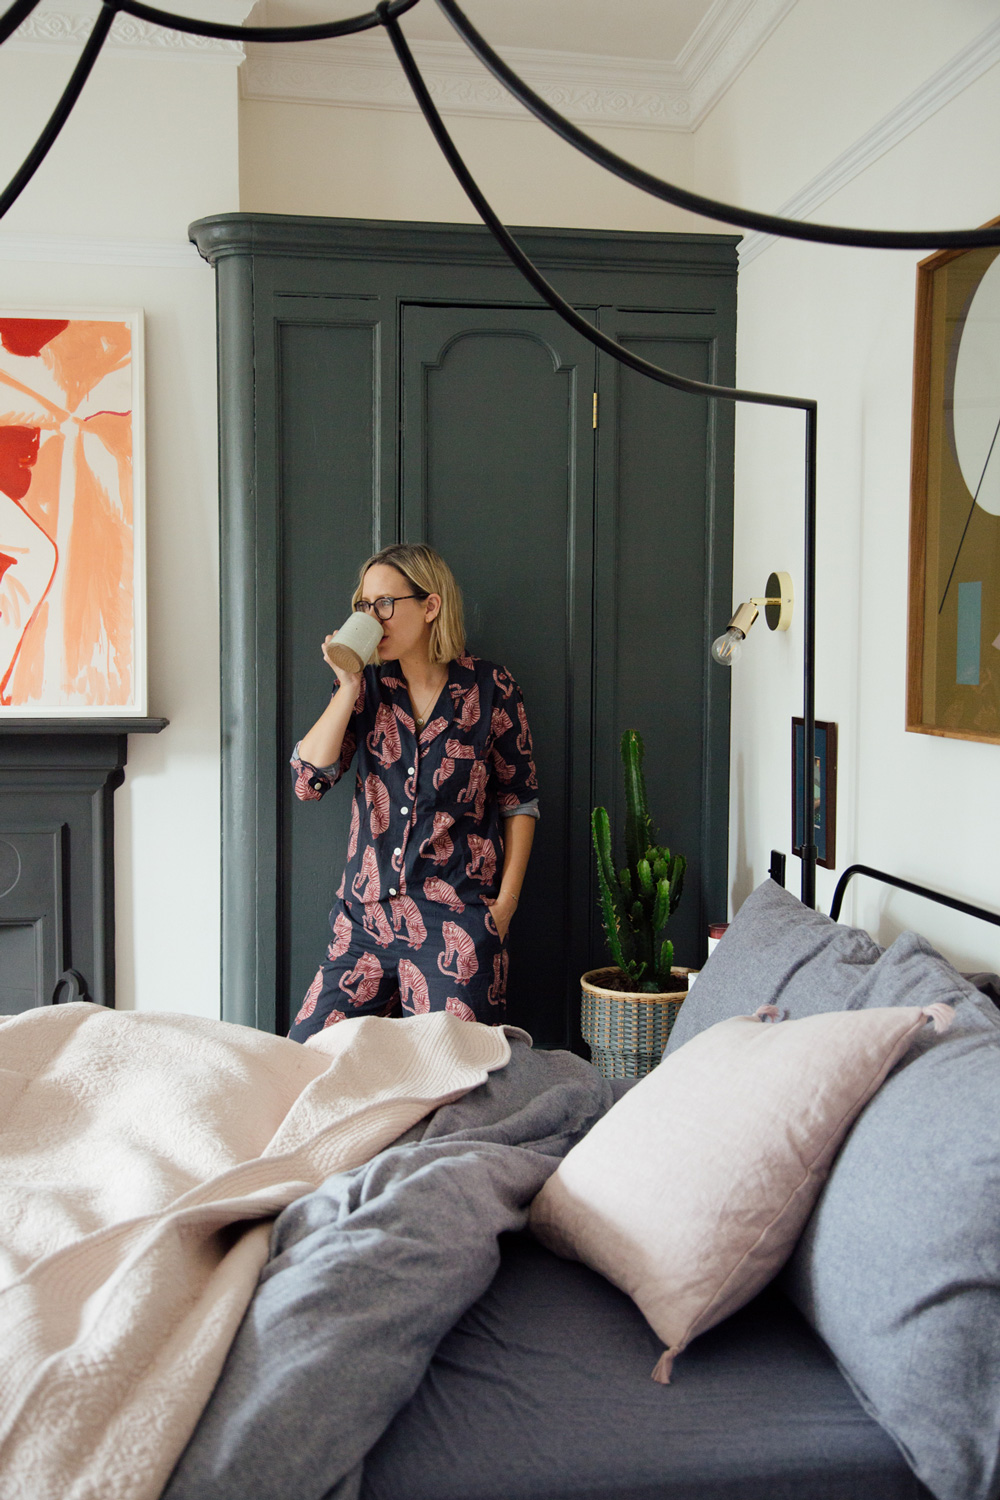 Alexandra Stedman wearing Desmond & Dempsey pyjamas in her bedroom whilst drinking a coffee.